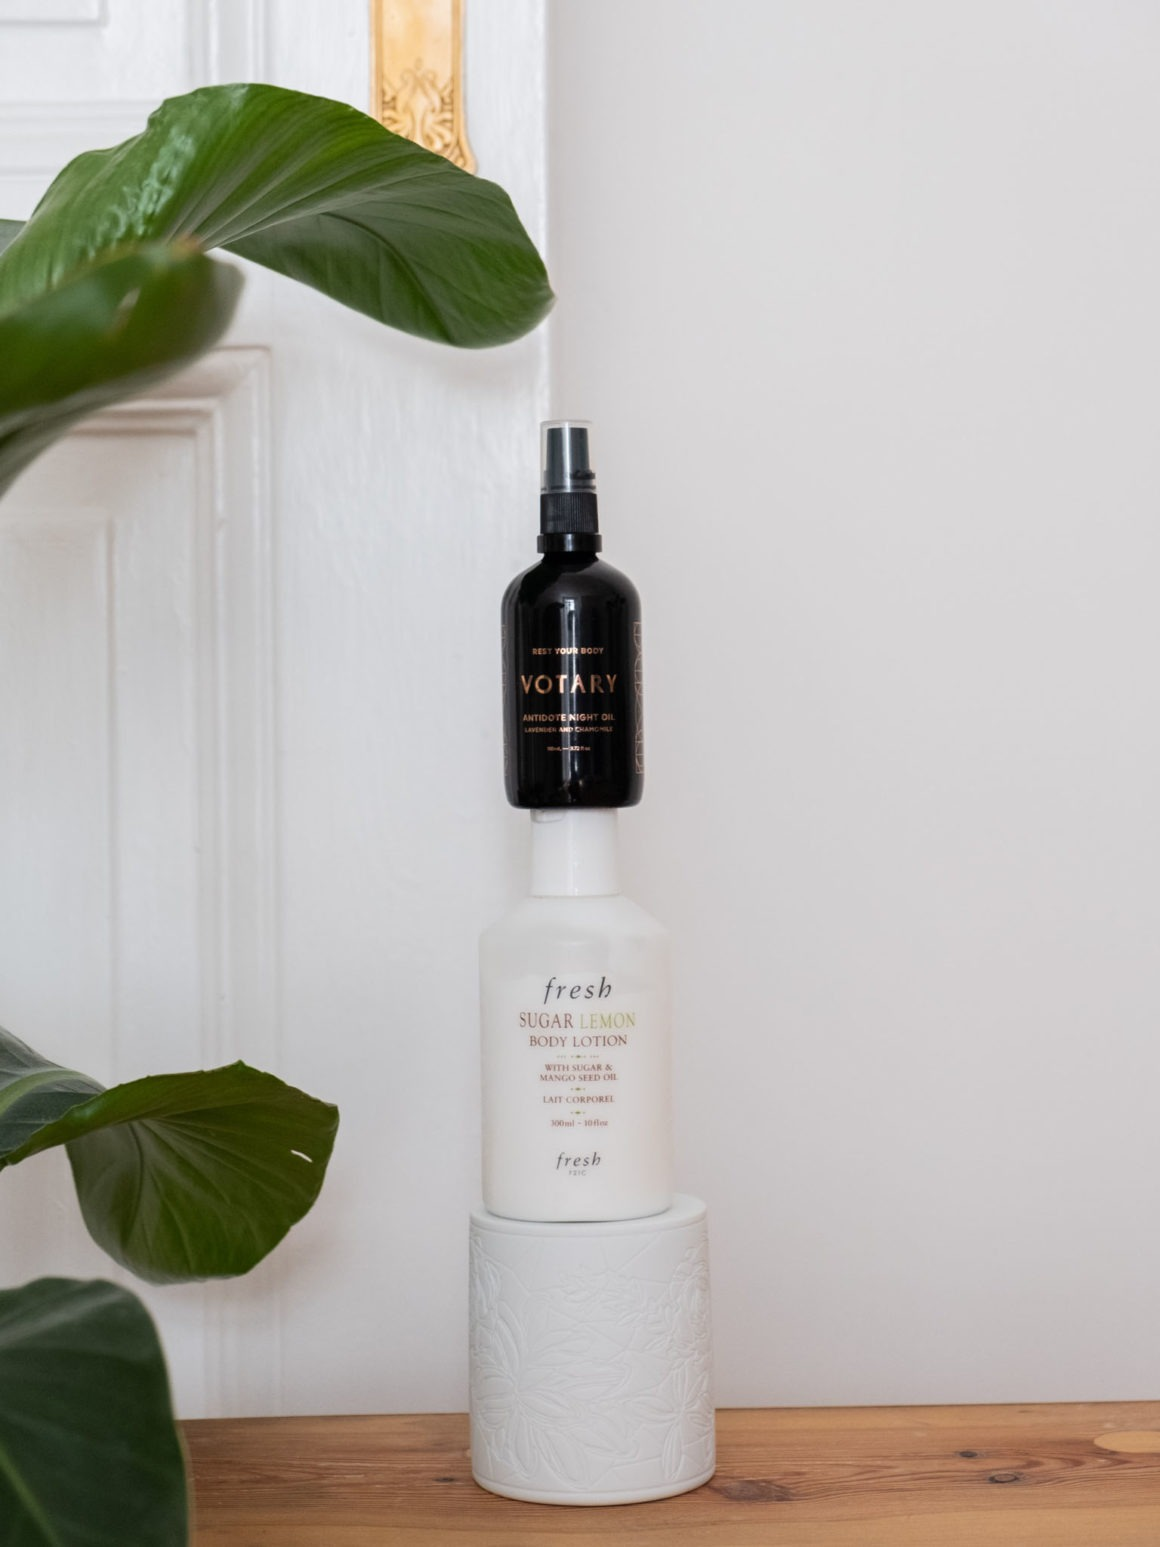 Beautyblog BareMinds Annies Favorite things Votary Antidote Night Oil